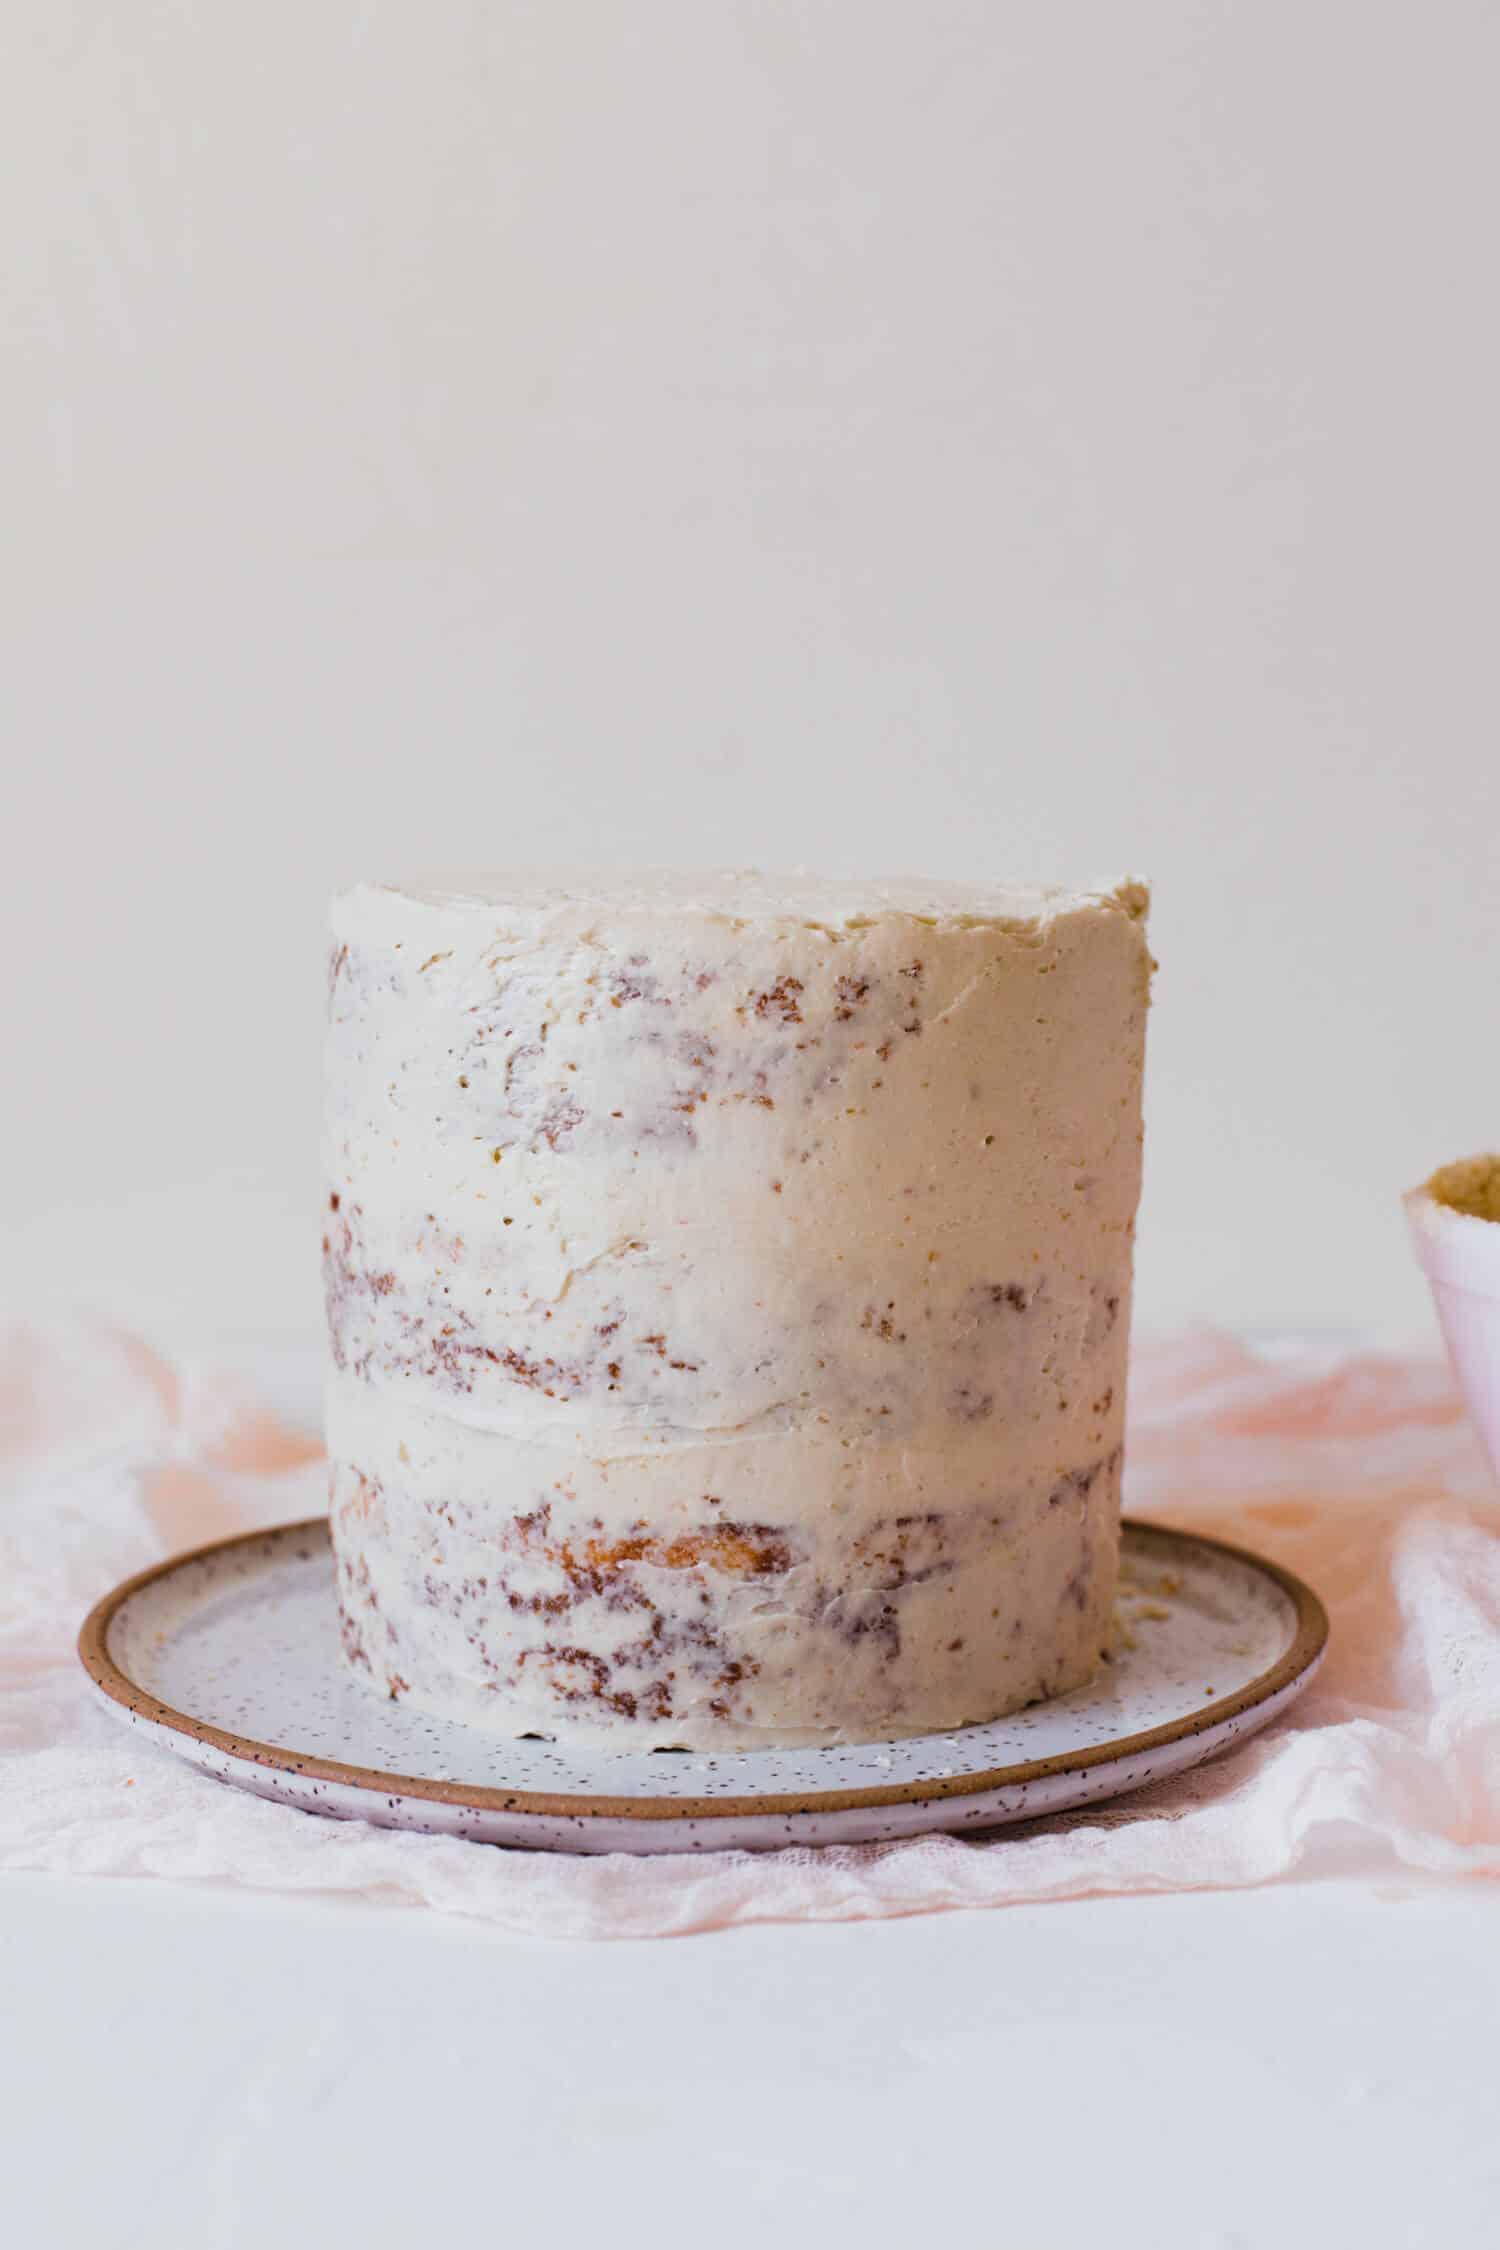 Tips For Frosting A Cake Without Crumbs